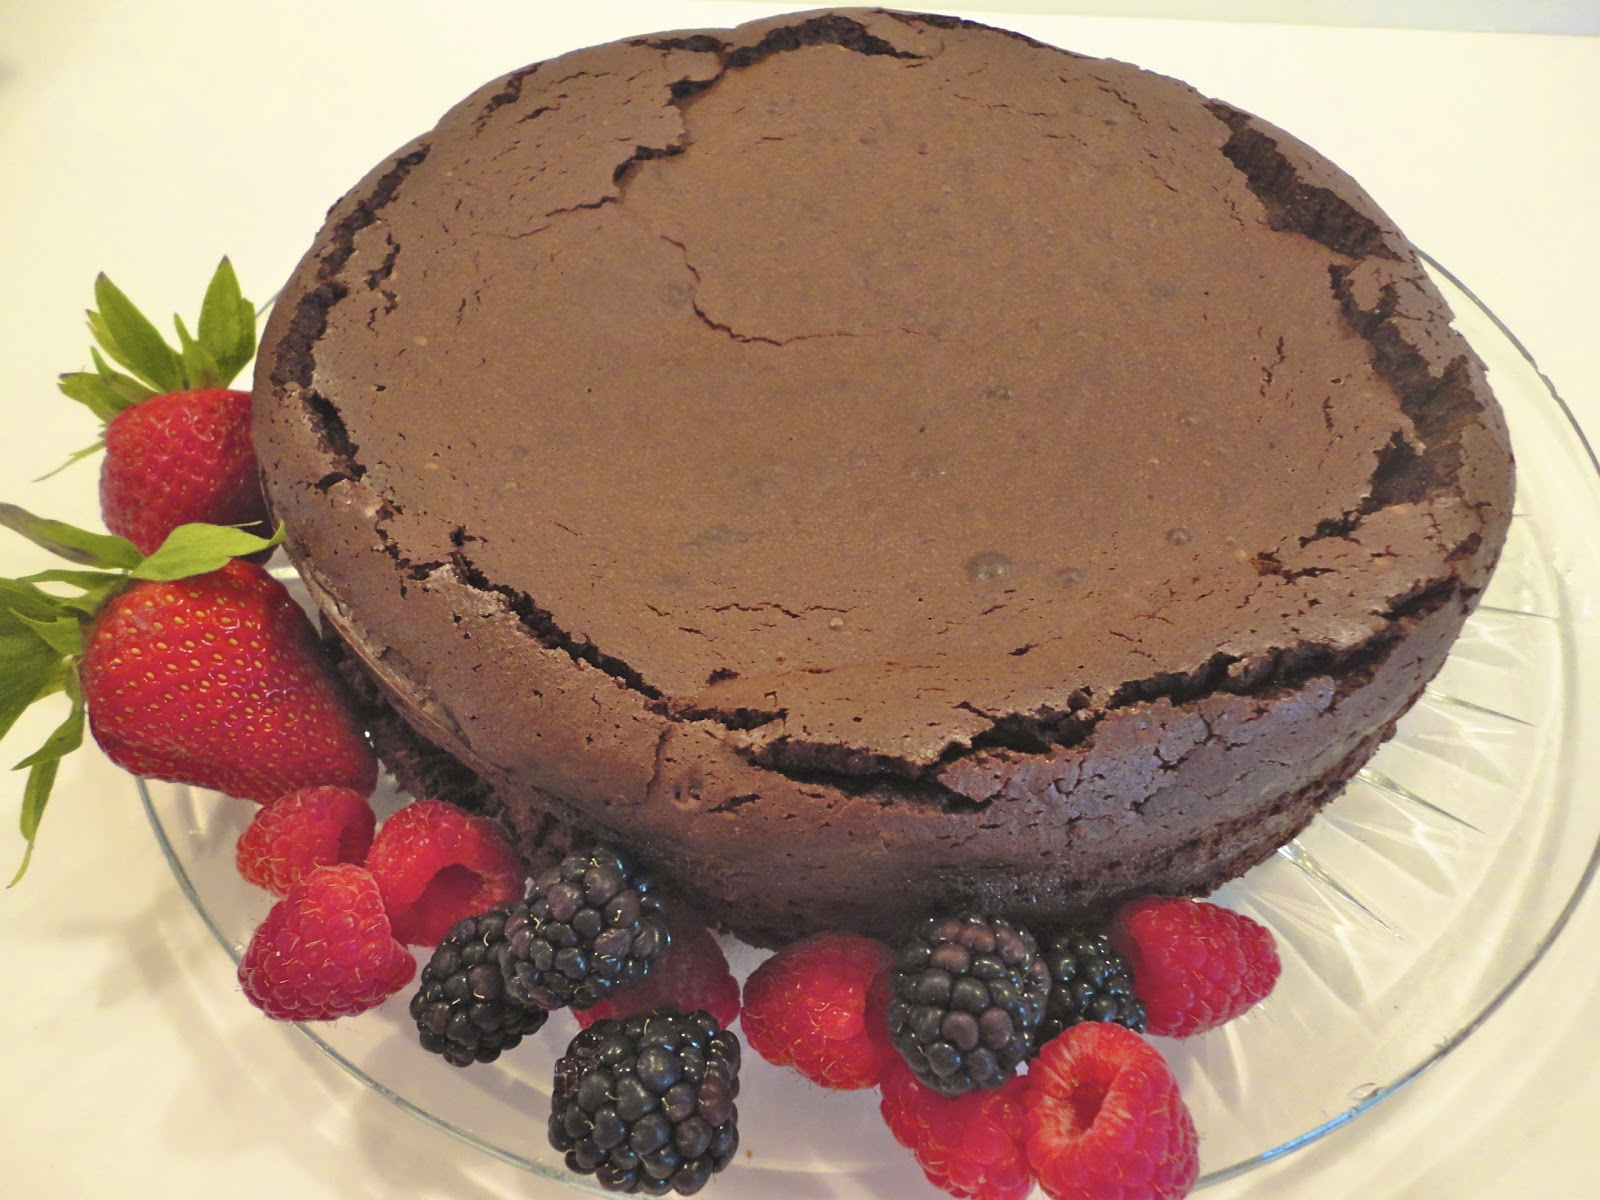 Mystery Lovers\' Kitchen: Chocolate Truffle Cake from Avery Aames